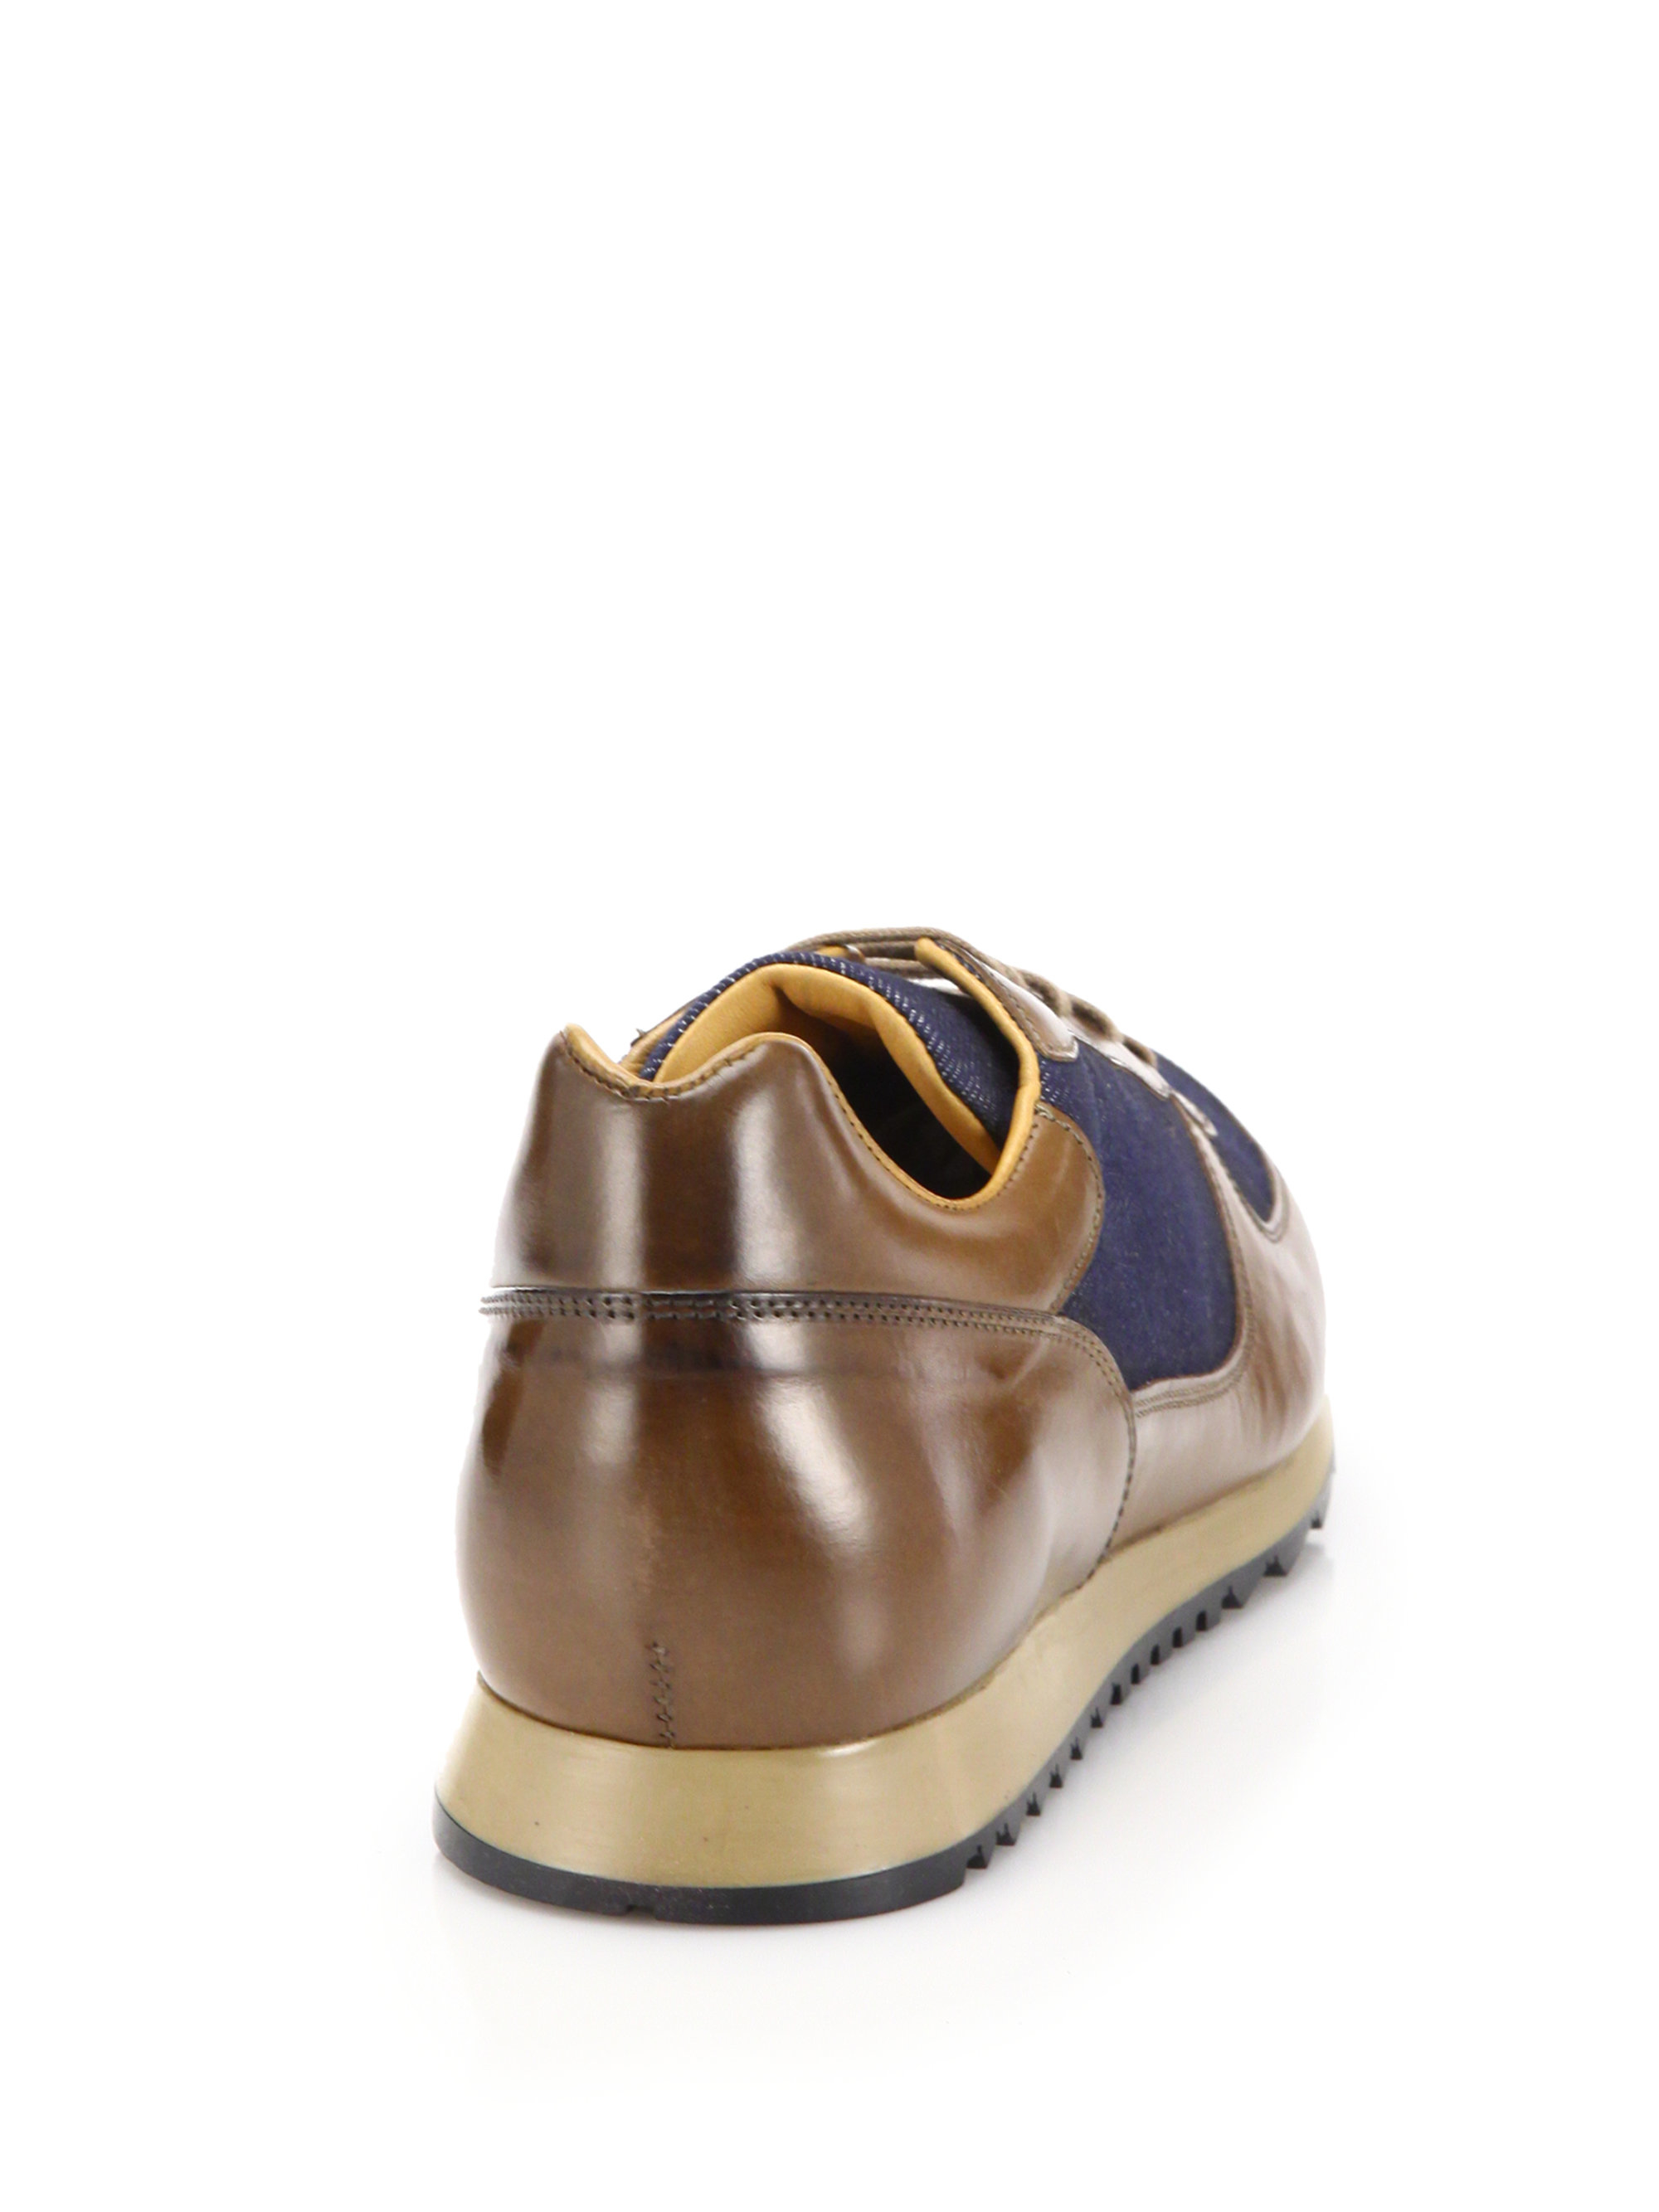 What Men S Shoes Are Sold At Tj Maxx